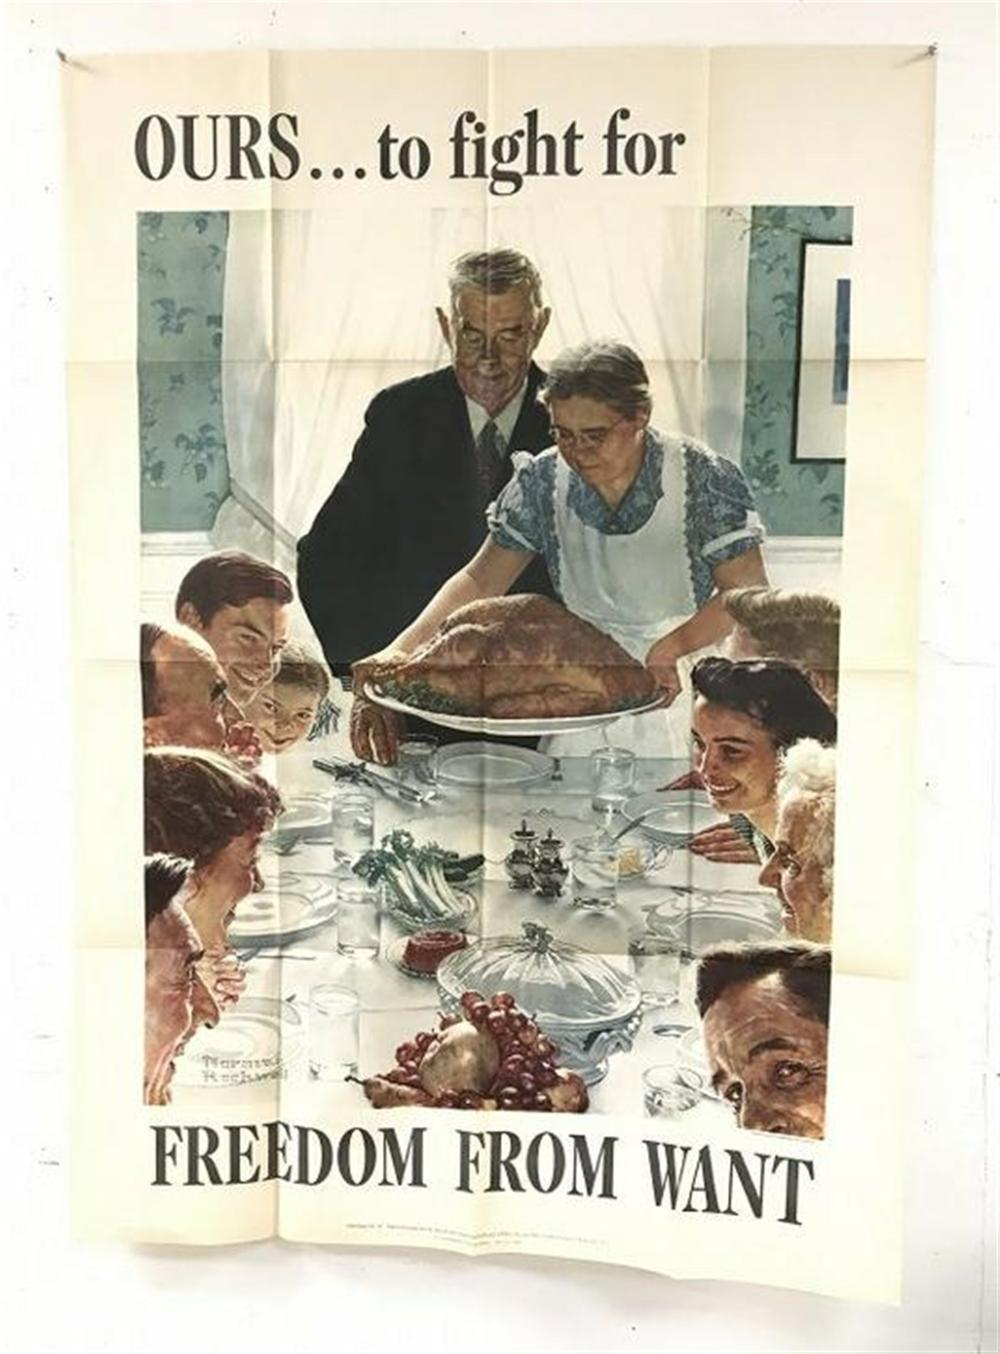 "NORMAN ROCKWELL WW II POSTER OURS?TO FIGHT FOR FREEDOM TO WANT, MEASURES 55 1/2"" X 40"". NICE OVERAL CONDITION?.."